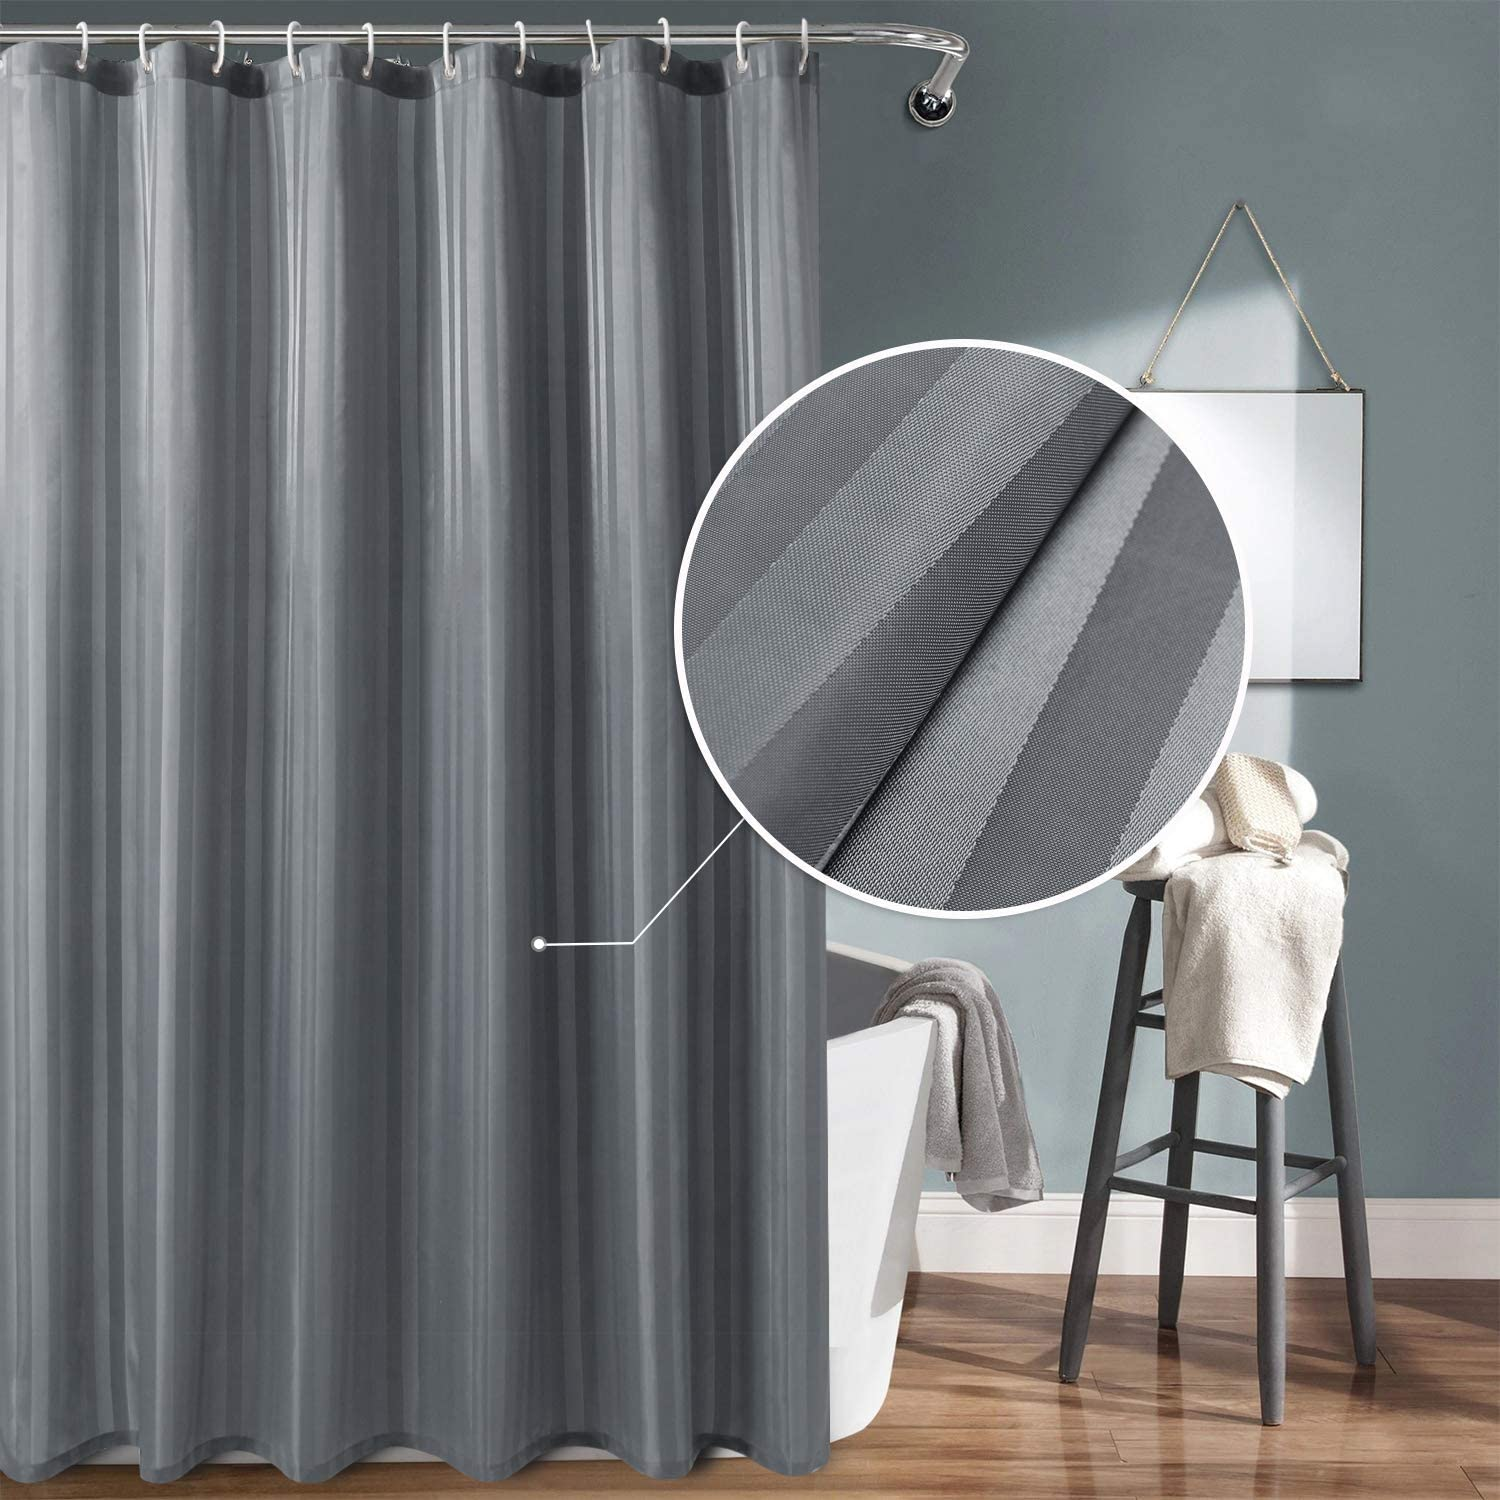 DWCN Grey Fabric Shower Curtain with Hooks - Stripe Patterned Water Repellent Bathroom Shower Curtain 72 x 78 Extra inches Long with Magnets